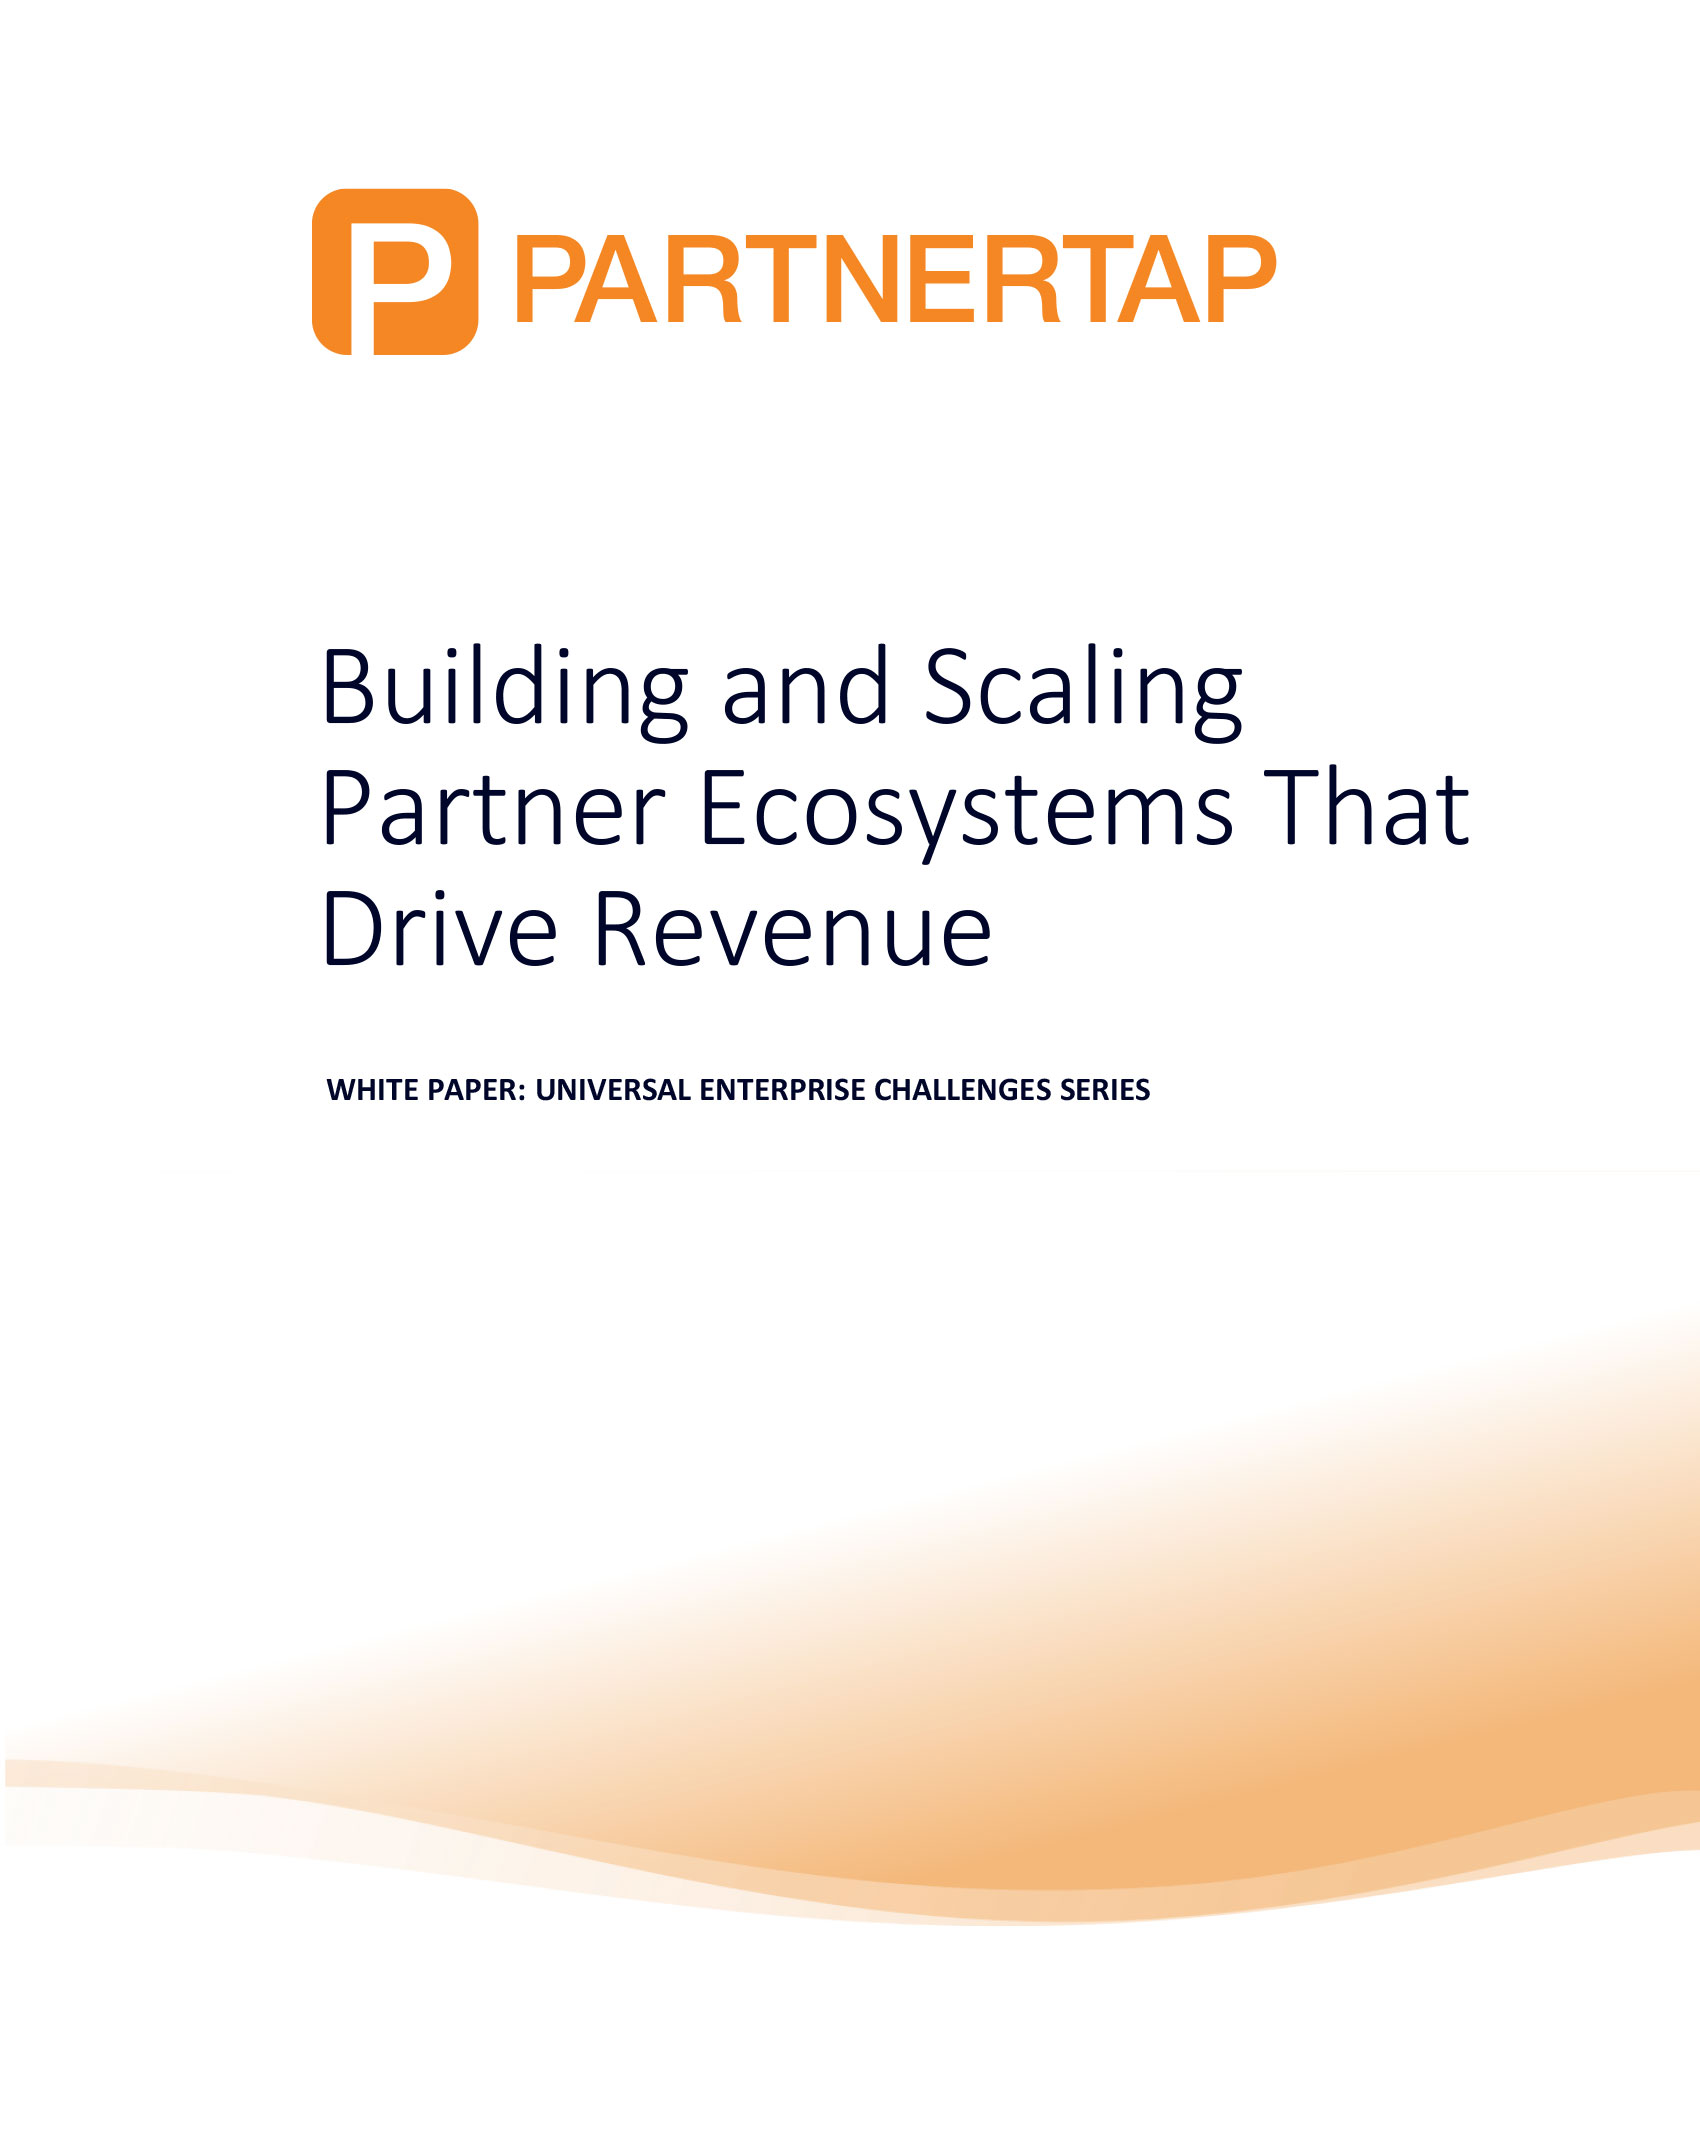 Building and Scaling Partnerships White paper Graphic